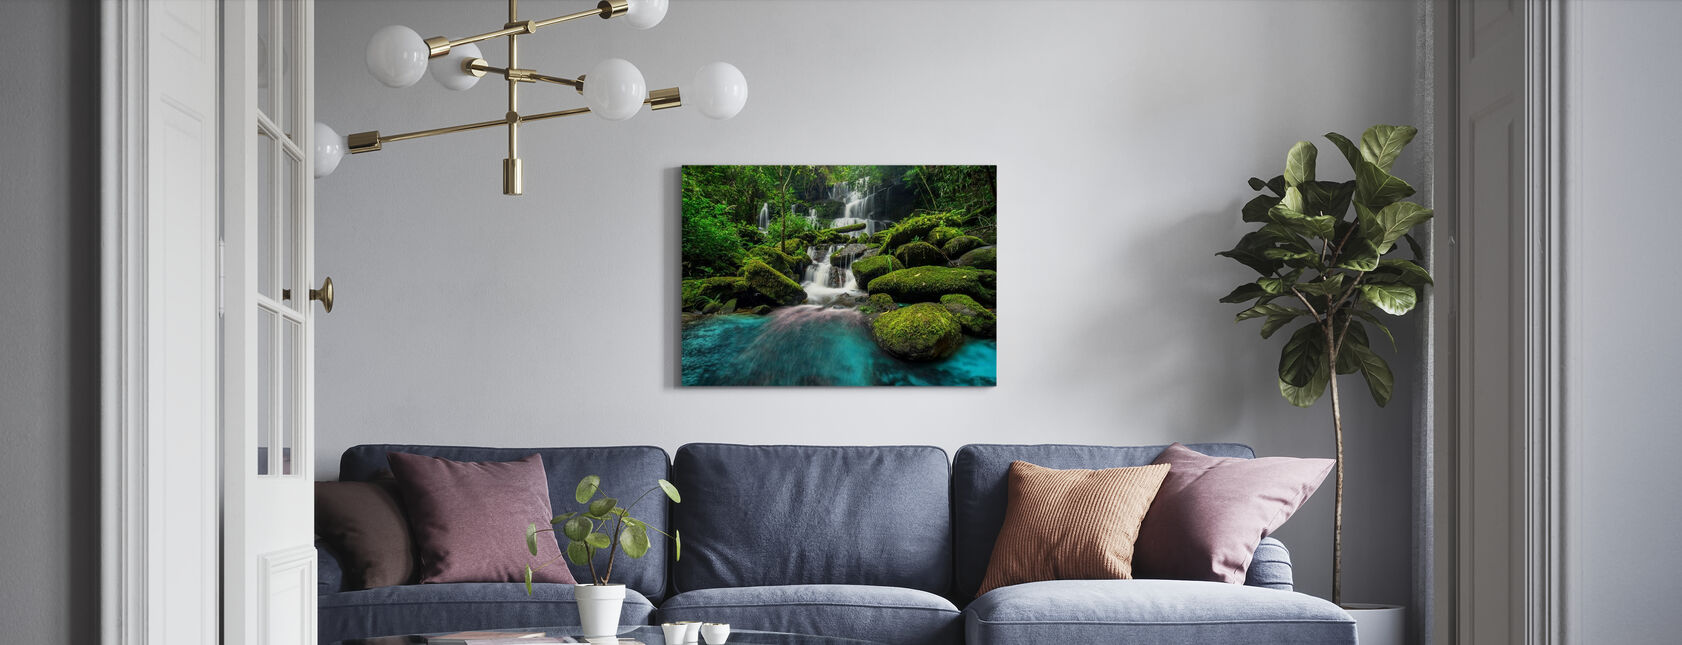 Waterfall in Green Forest - Canvas print - Living Room